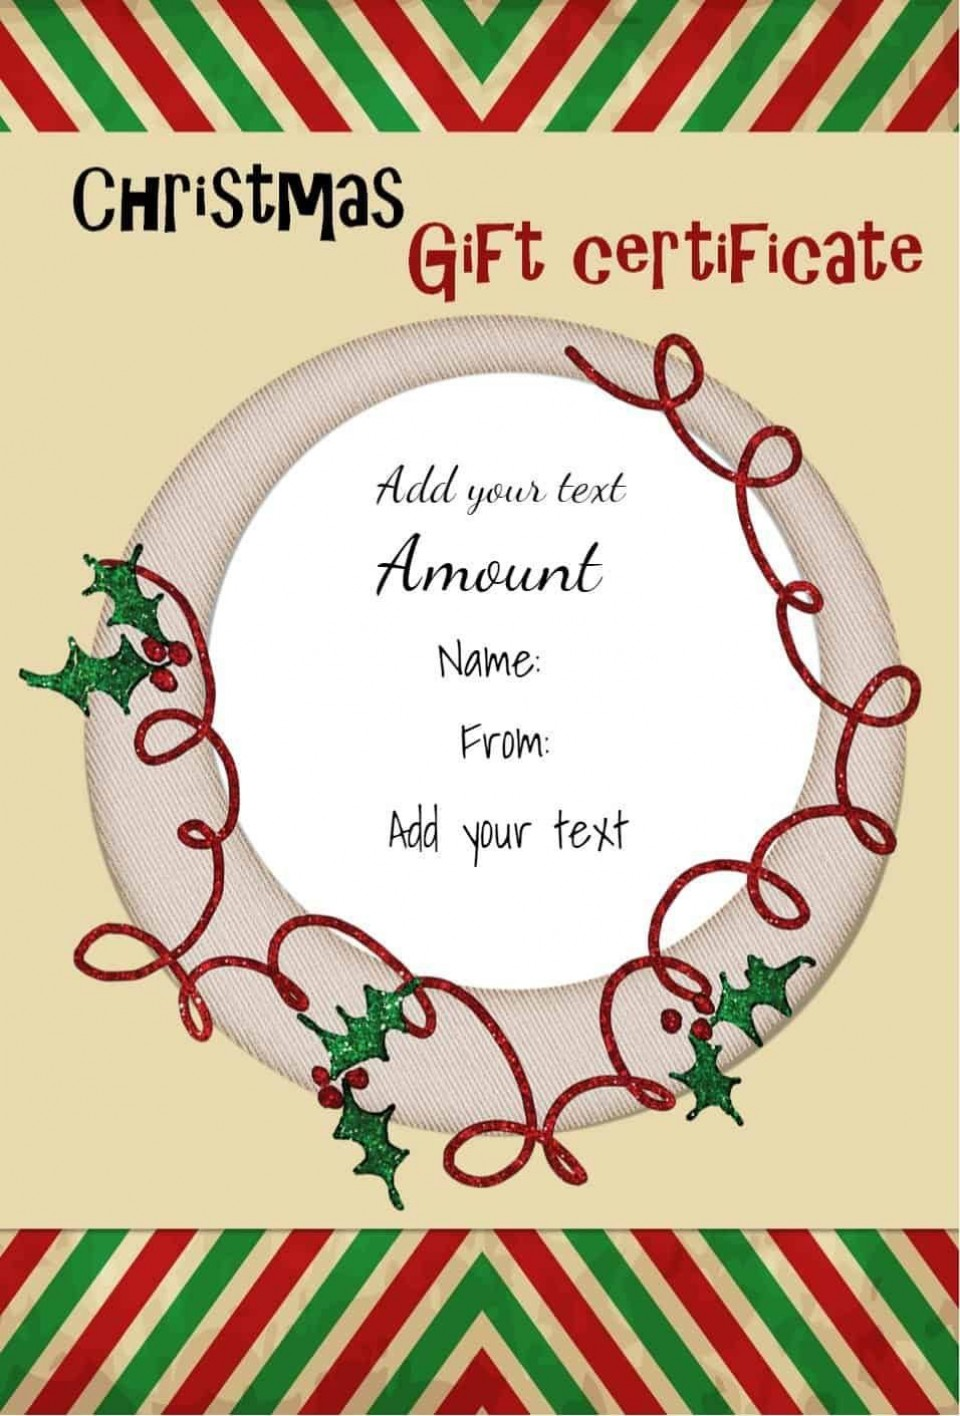 007 Fascinating Template For Christma Gift Certificate Free Idea  Voucher Uk Editable Download Microsoft Word960